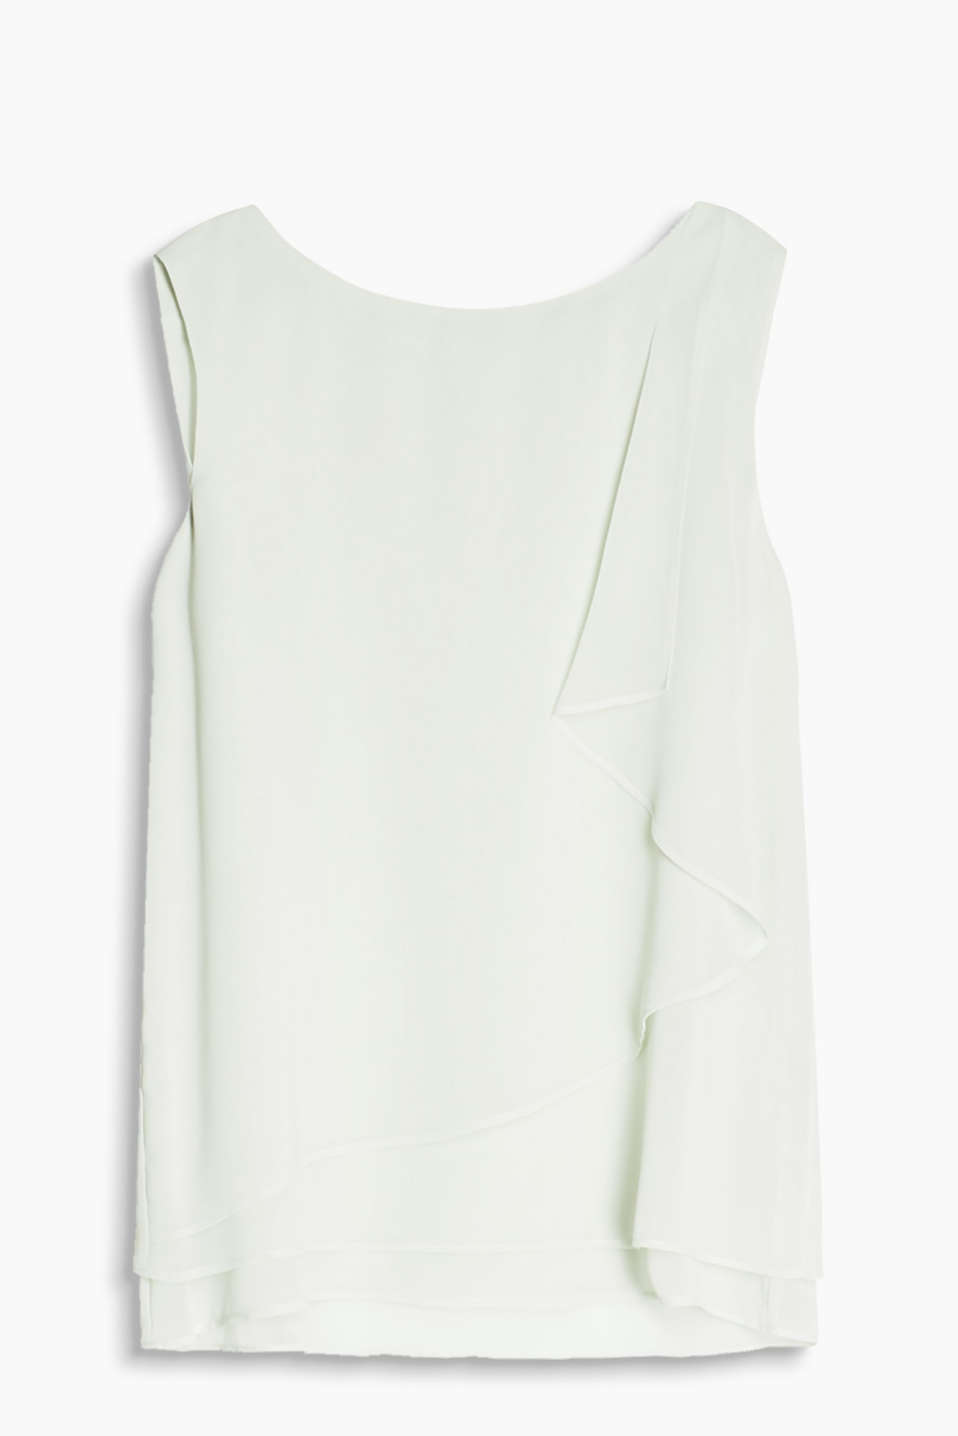 Layered, delicate chiffon top with a flirty frill